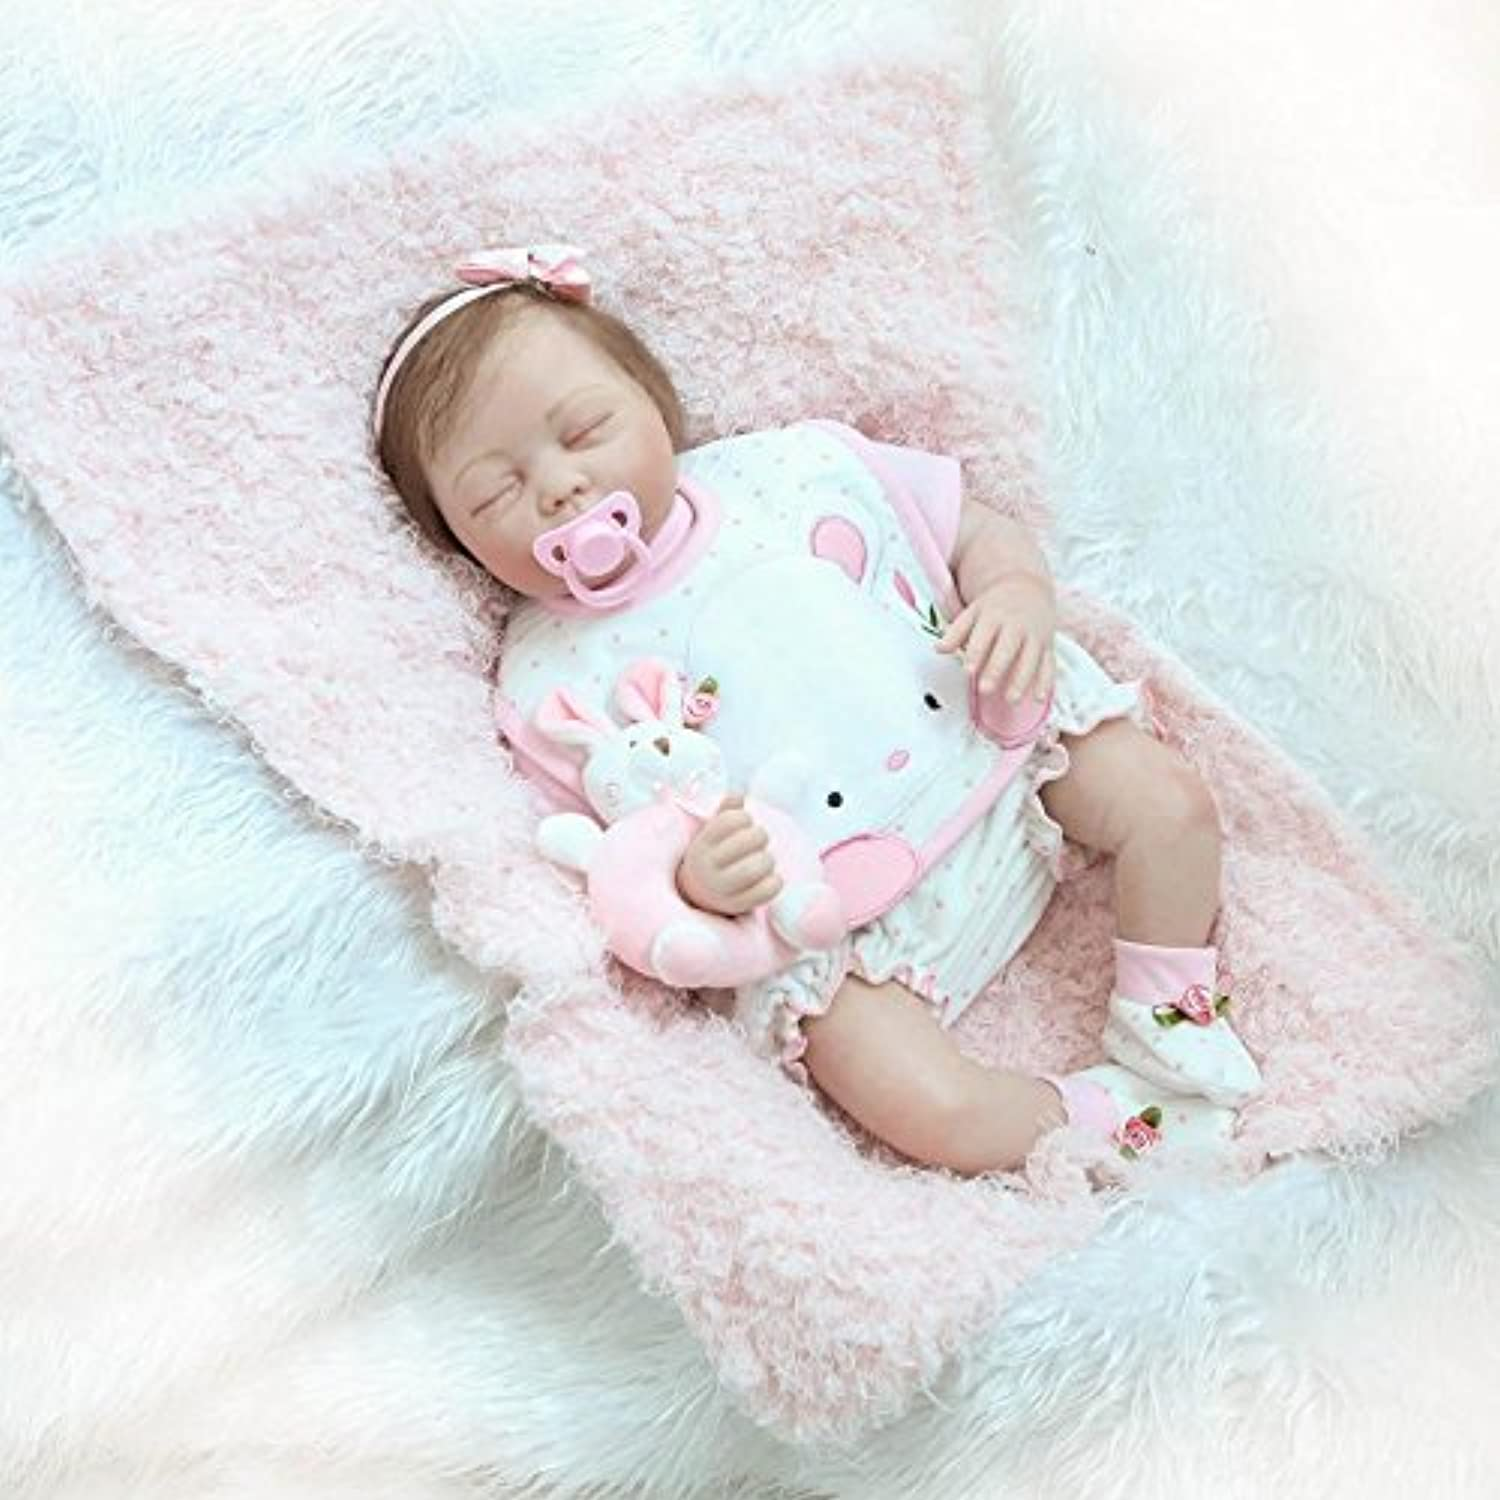 NKol Reborn Baby Dolls Soft Silicone Lifelike Realistic Sleeping Girl Toddlers Doll, 22inch 55cm Weighted Baby Toy